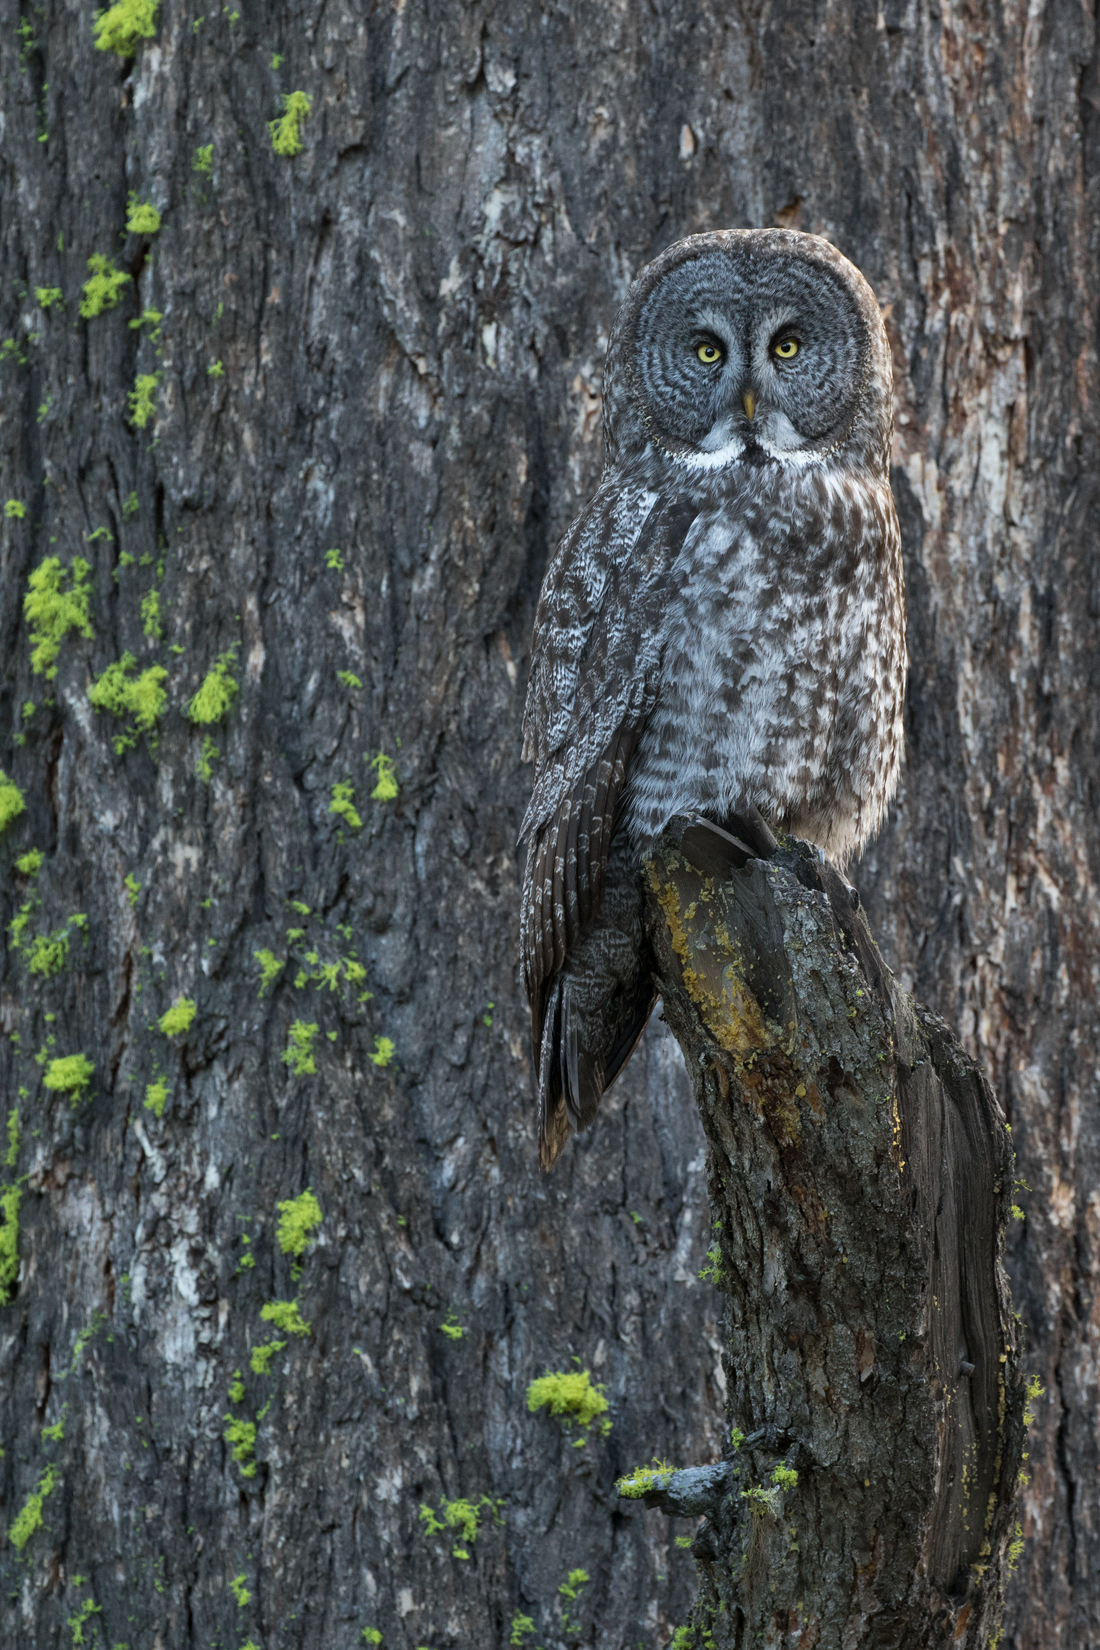 Exhibiting amazing camouflage, a male perches against the trunk of an old growth Douglas fir, preparing to begin his evening hunt.